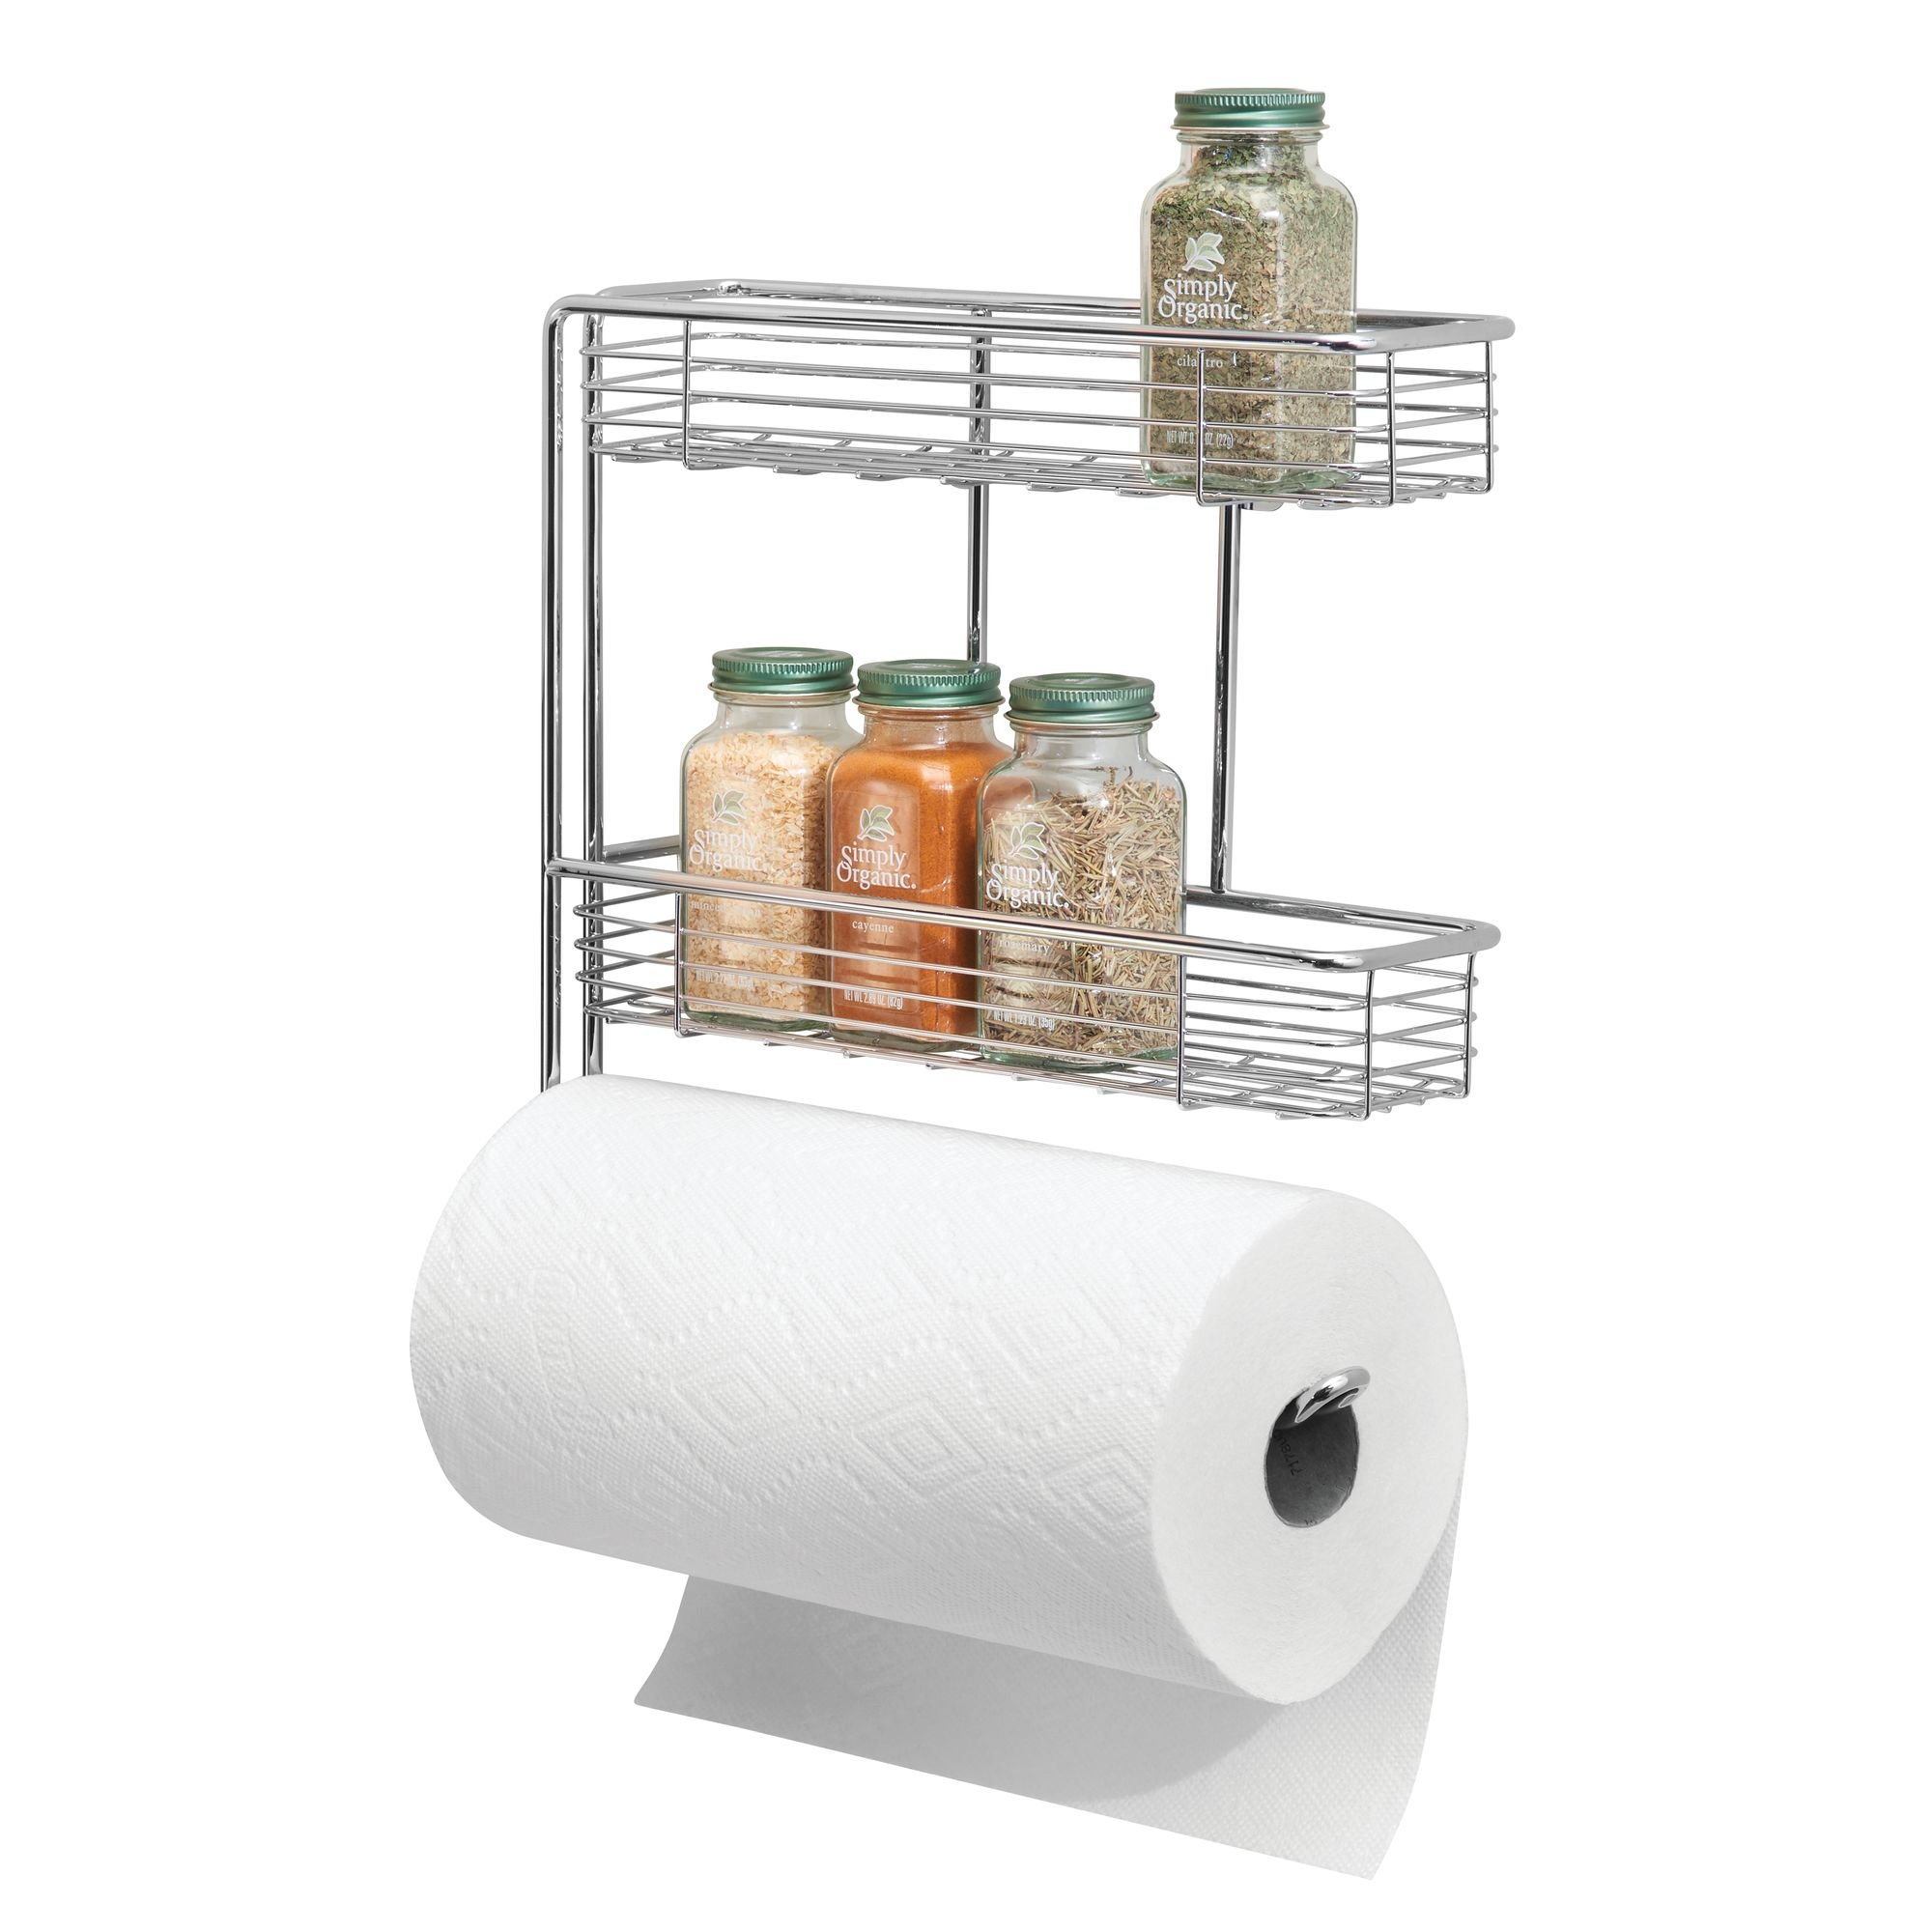 mDesign Wall Mounted Metal Steel Paper Towel Roll Holder/Dispenser Rack Organizer - Two Tier Shelves for Glass Spice Bottles Jars Organization - use for Kitchen and Pantry Storage - Chrome